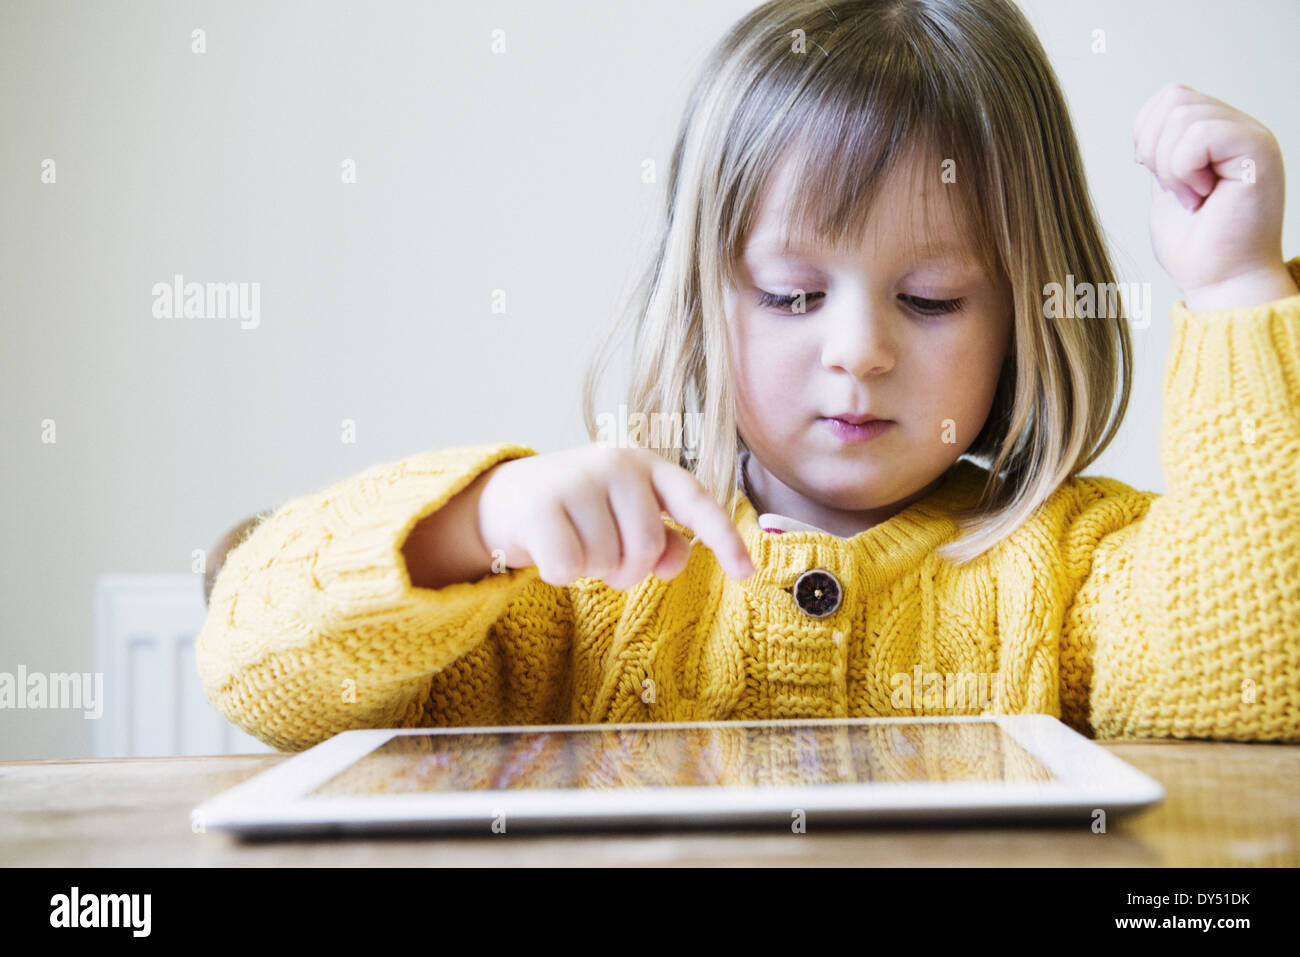 Jeune fille à la table de cuisine using digital tablet Banque D'Images